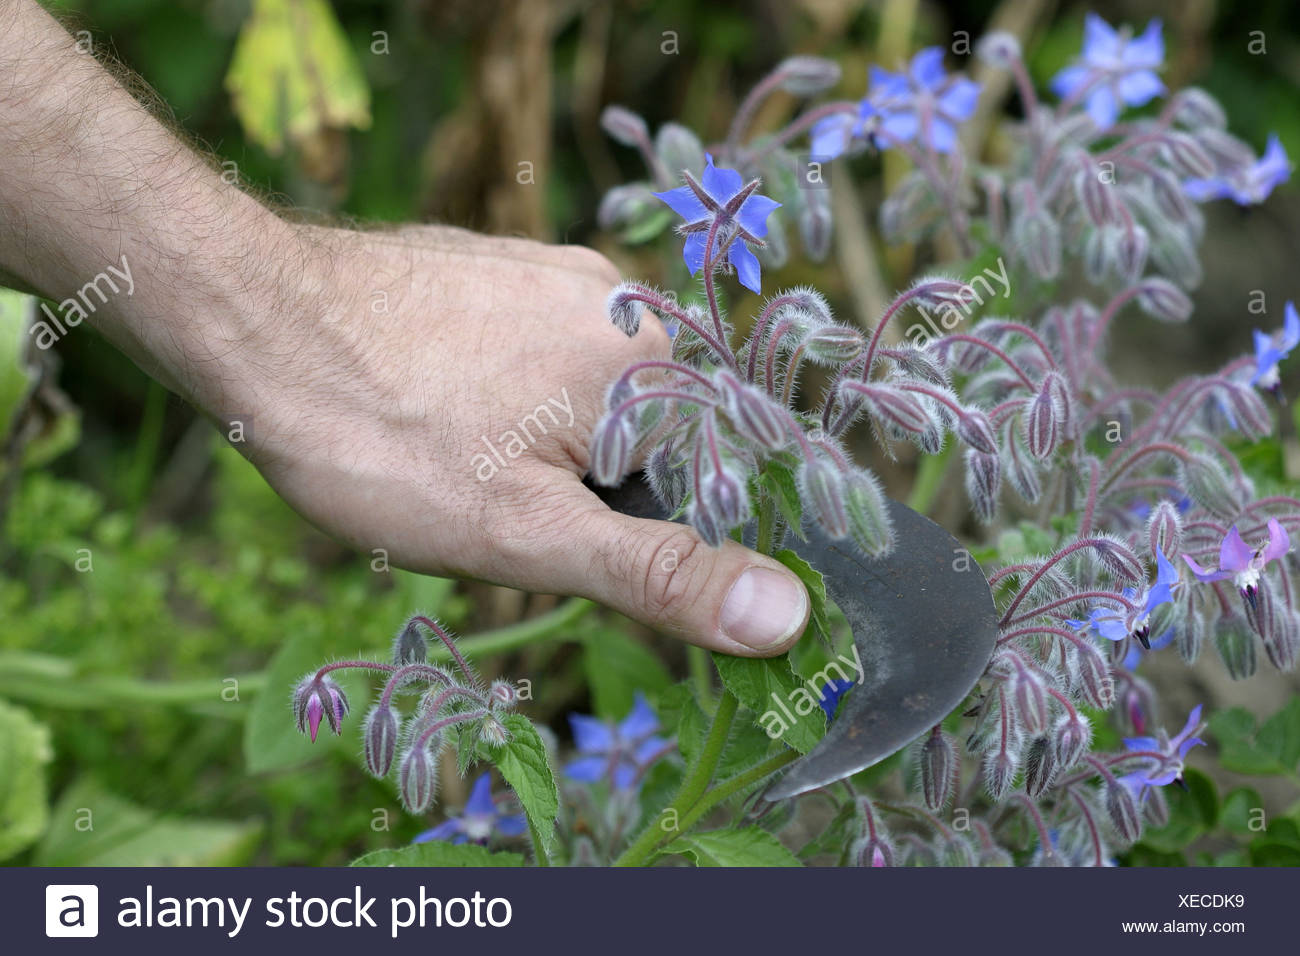 Harvest of borage blooms (Borago officinalis) with a billhook in an ecological country garden Stock Photo